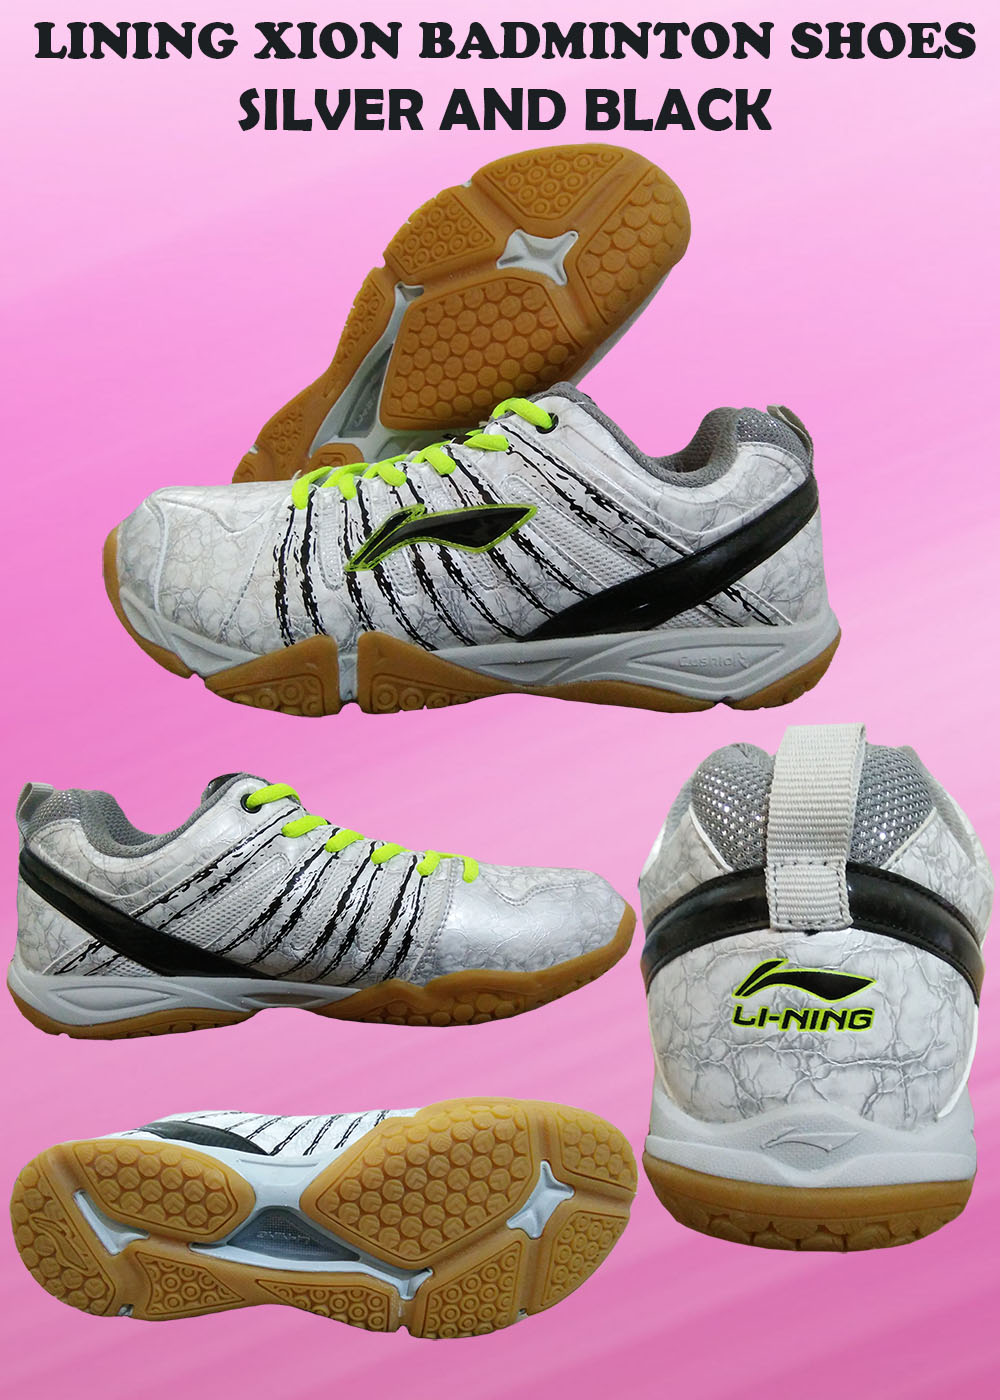 LI NING XION Badminton Shoes Silver and Black_2